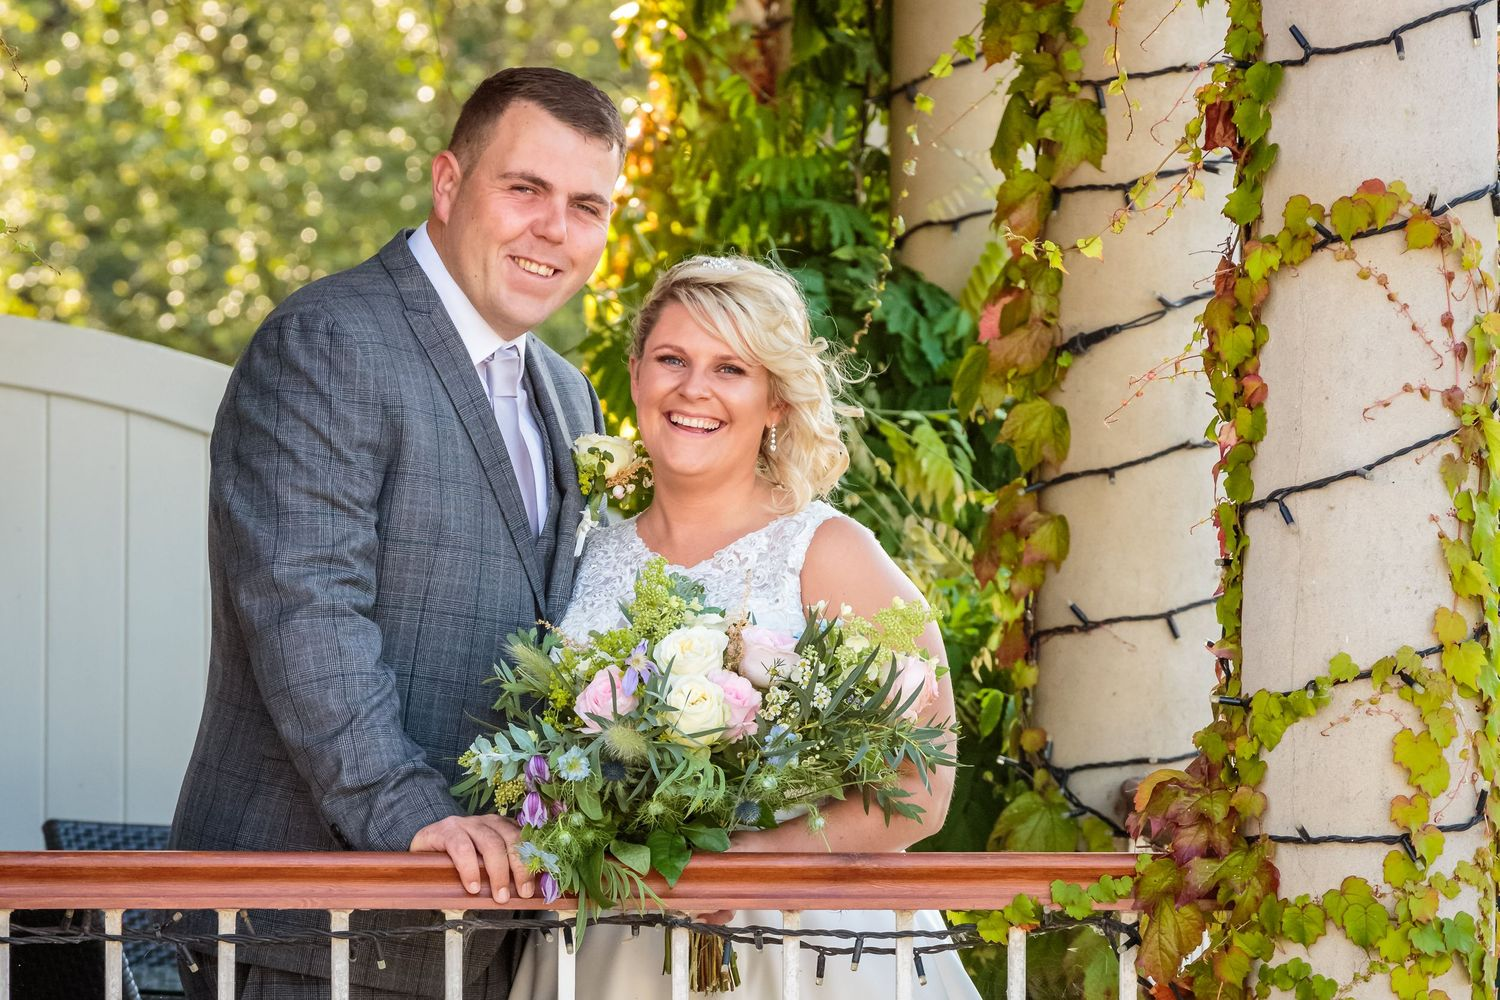 relaxed photo of the bride and groom smiling lean on the balcony rail pillars behind them wrapped in fairy lights